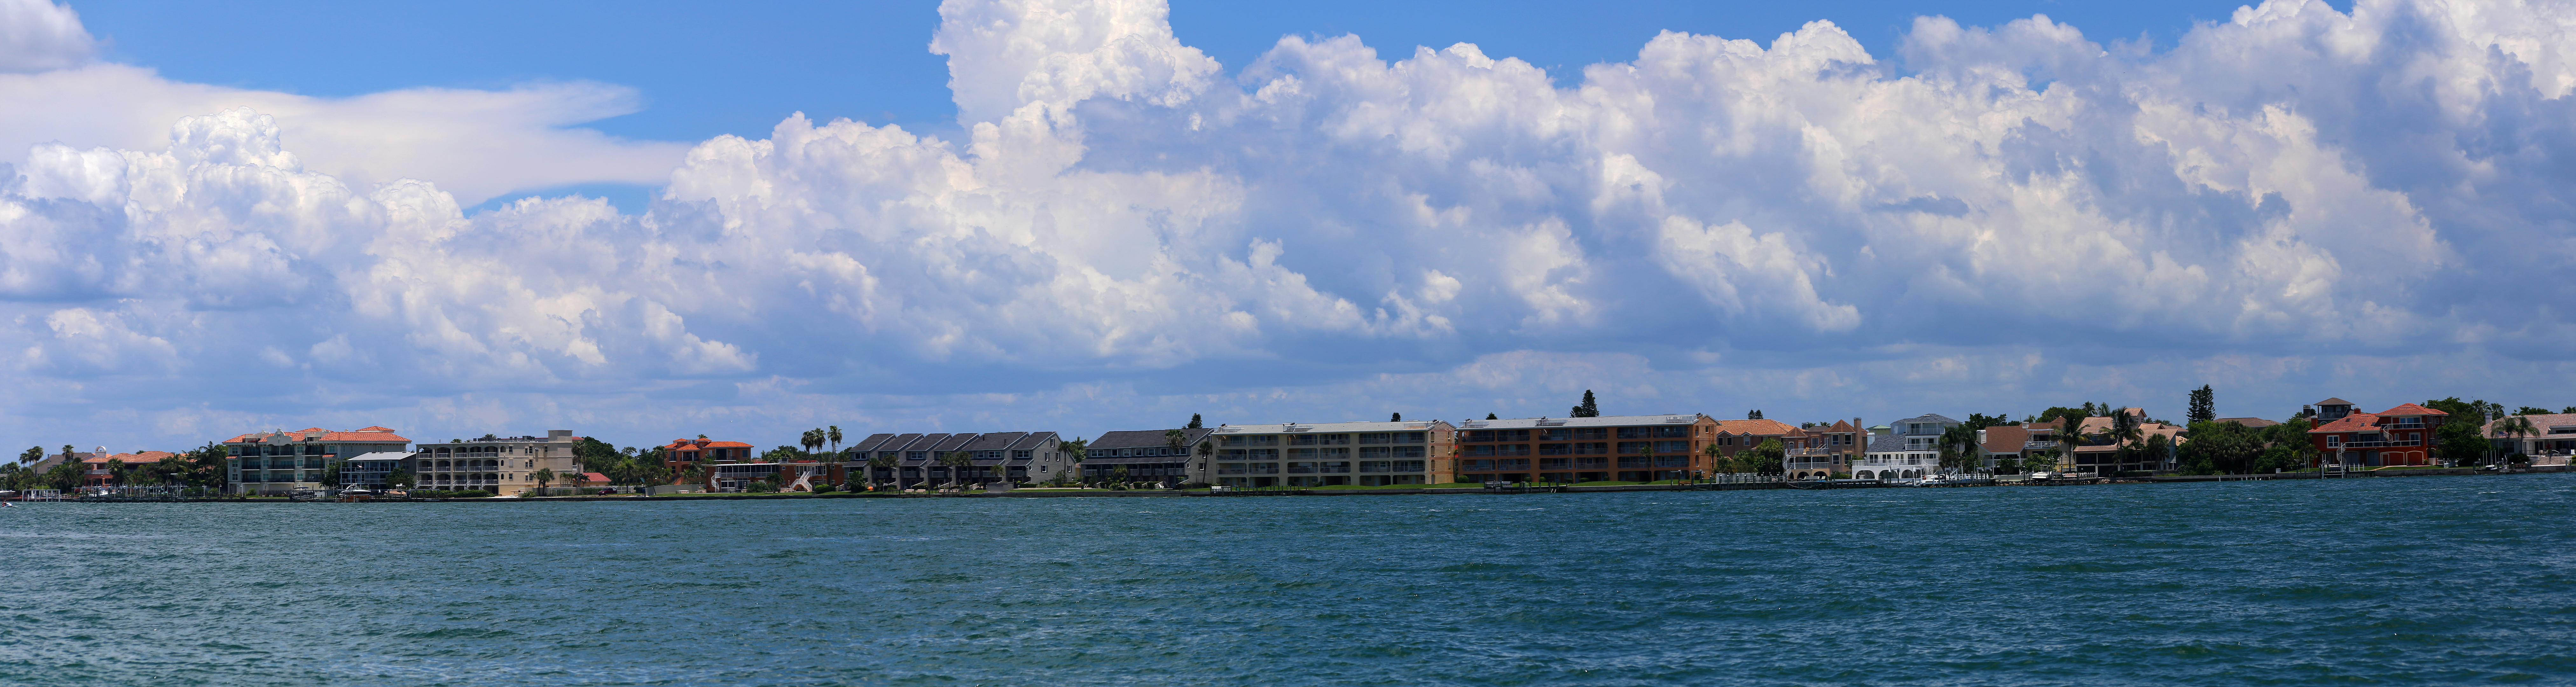 View from pass-a-grille way on pine key island, tampa bay area, fl photo